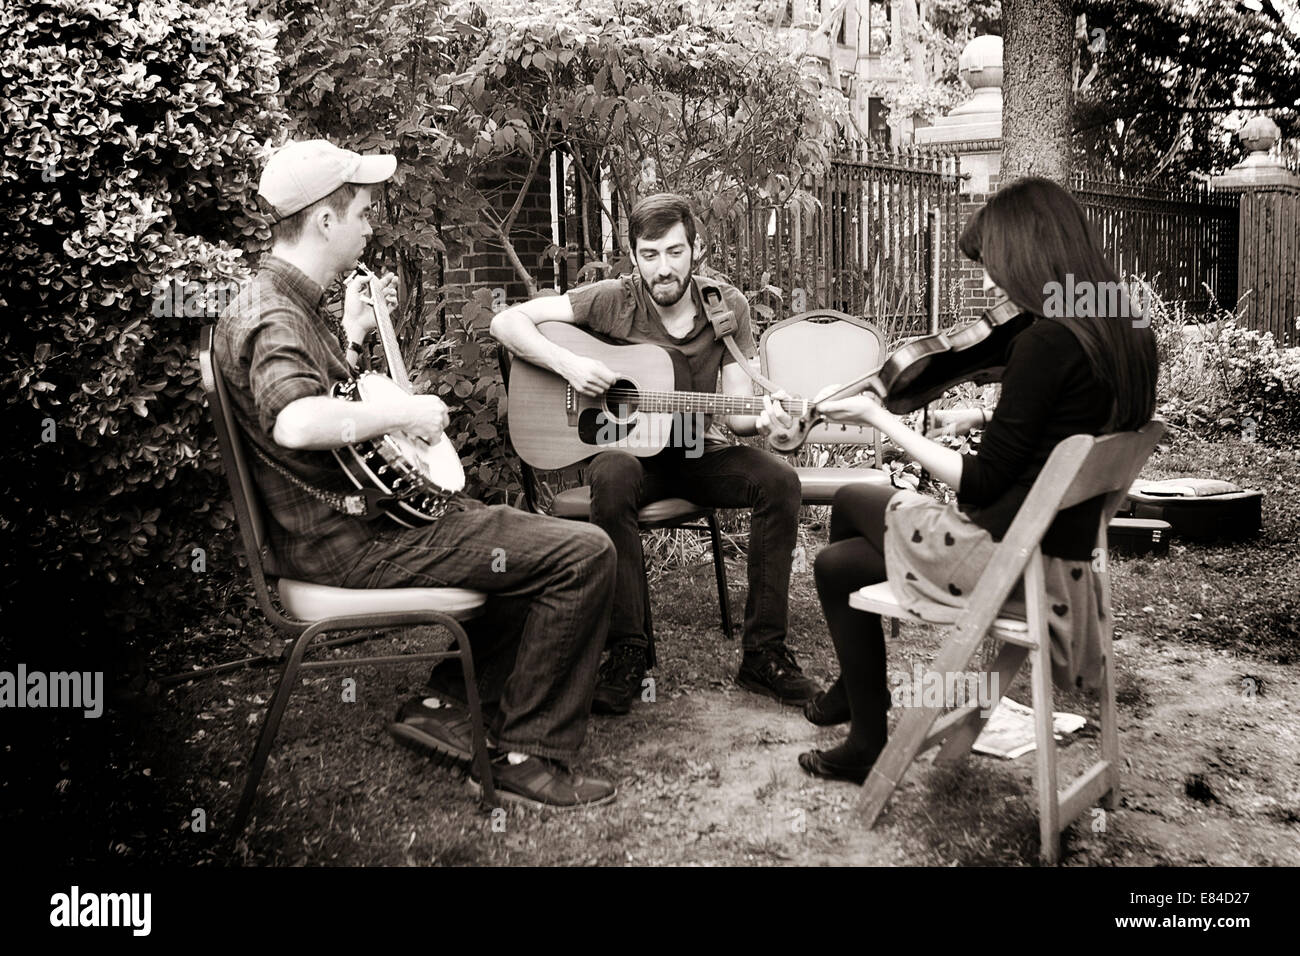 Old Time Music Jam In Brooklyn New York Stockfoto Bild 73856783